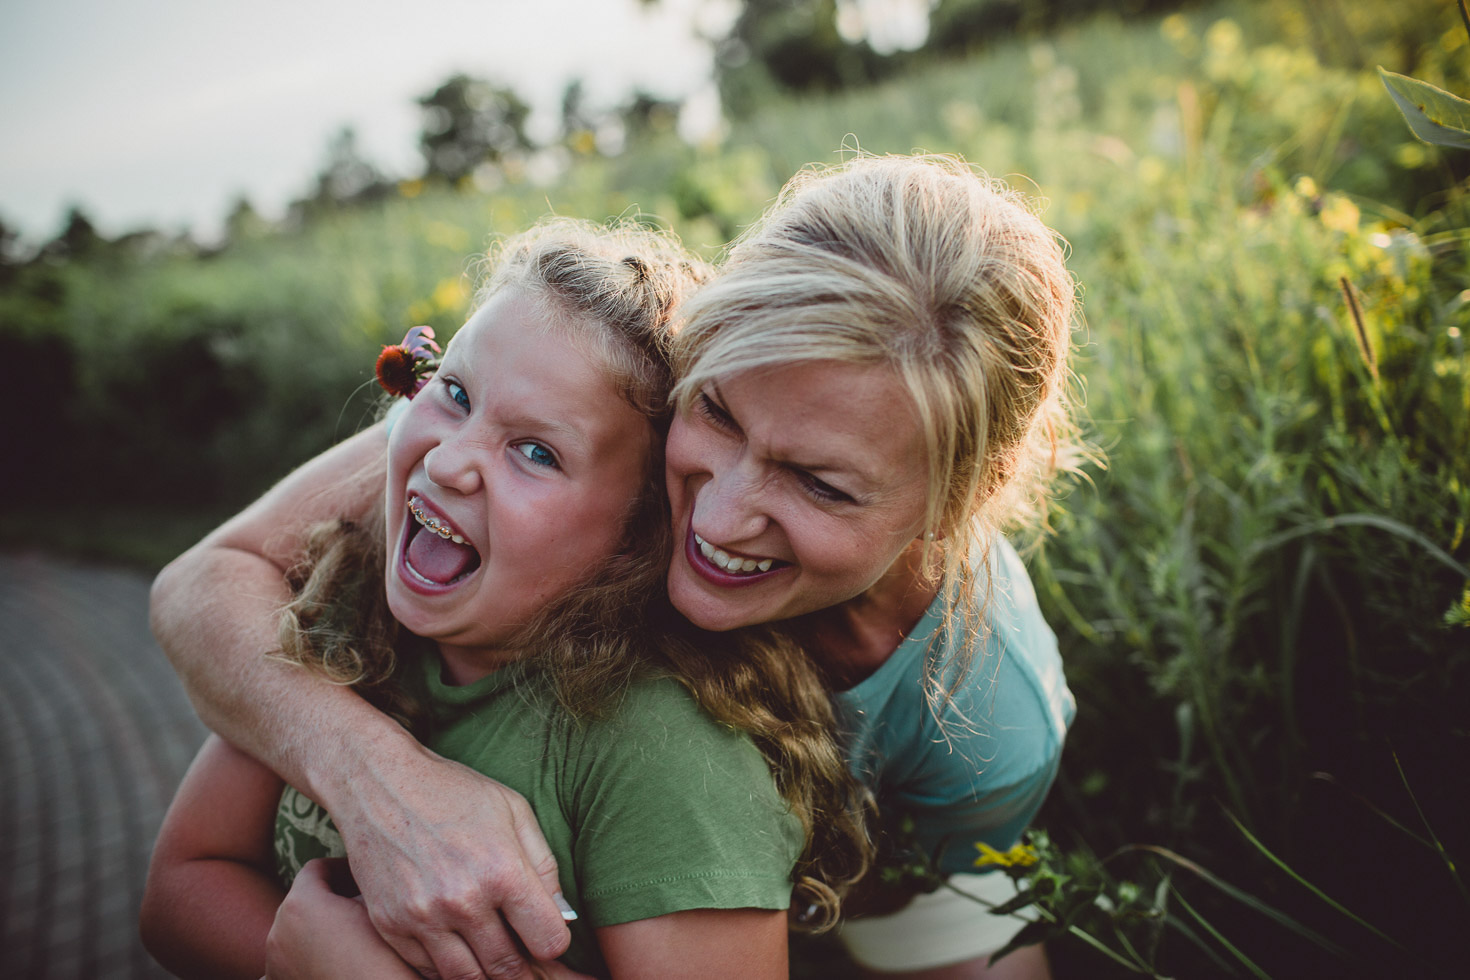 mother and daughter laughing in a warm embrace, connection